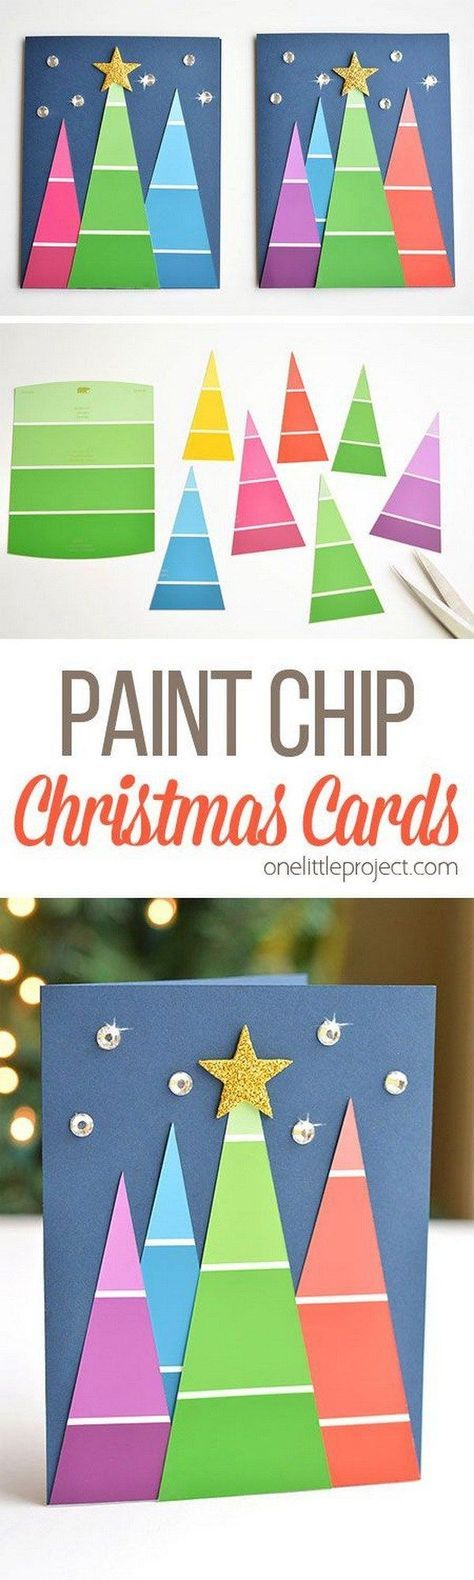 Paint Chip Christmas Cards. Easy and Fun DIY Christmas crafts for You and Your Kids to Have Fun.